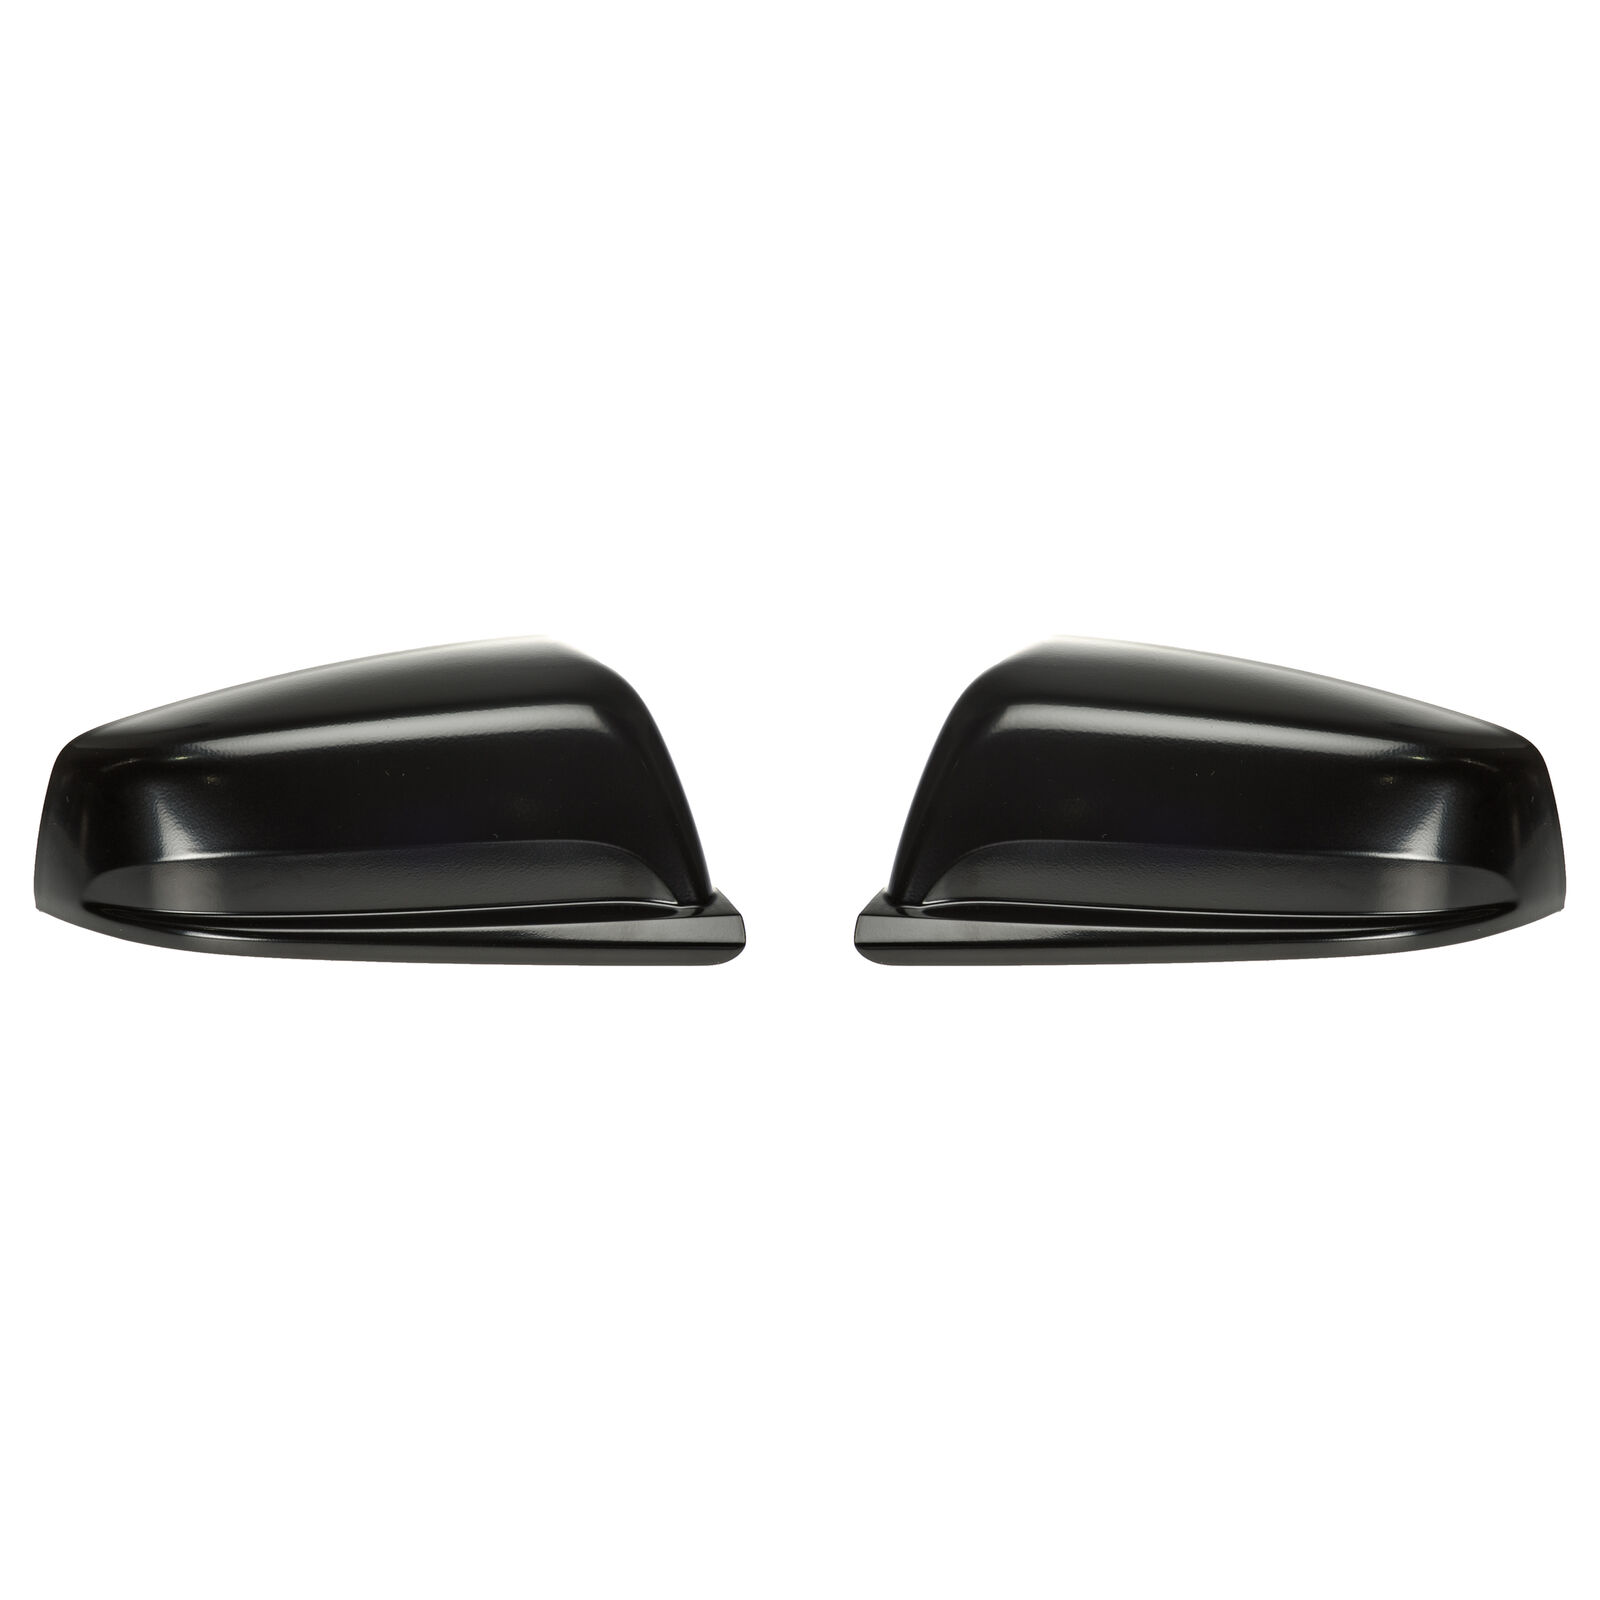 Oem New Right And Left Side View Mirror Cover Caps Set 13 16 Cap For Chevy Malibu Wiring Diagram Chevrolet 1 Of 5only 2 Available See More